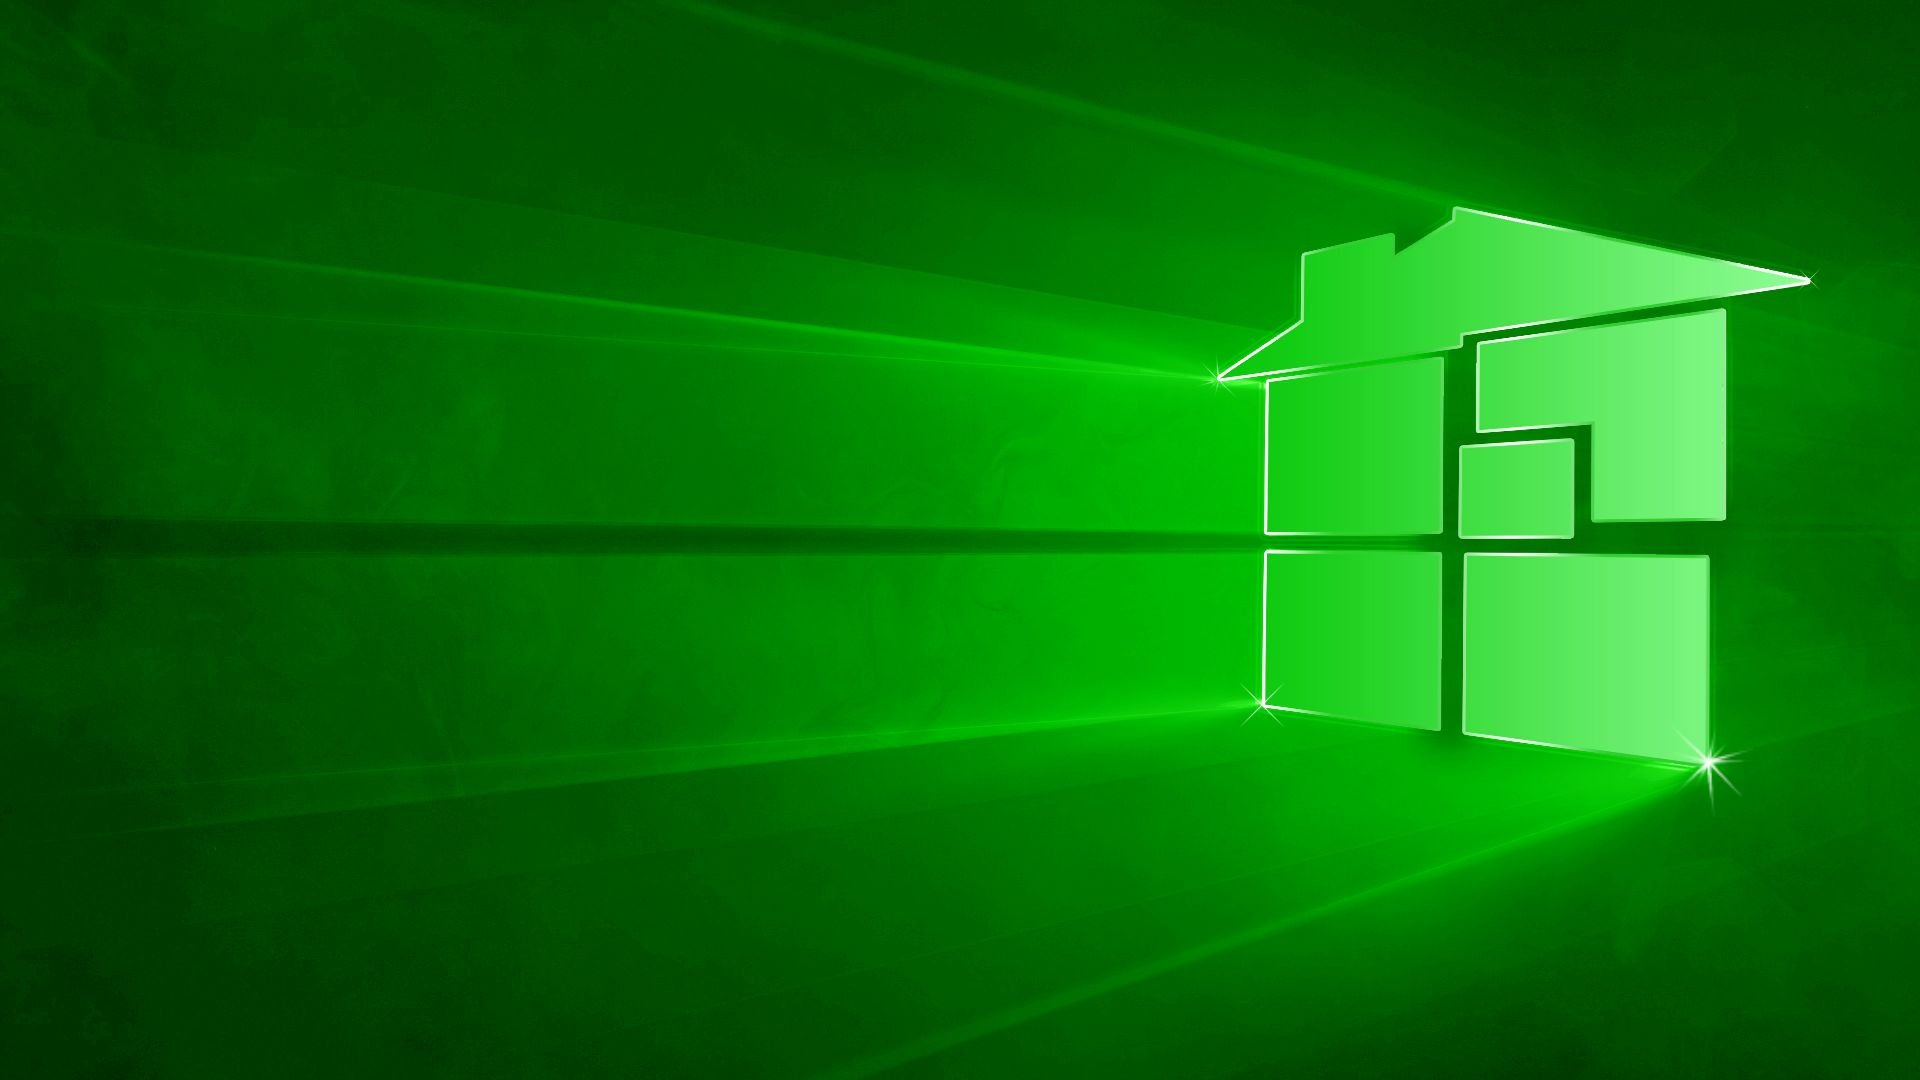 I want to replace the Windows 10 login screen background with this 1920x1080